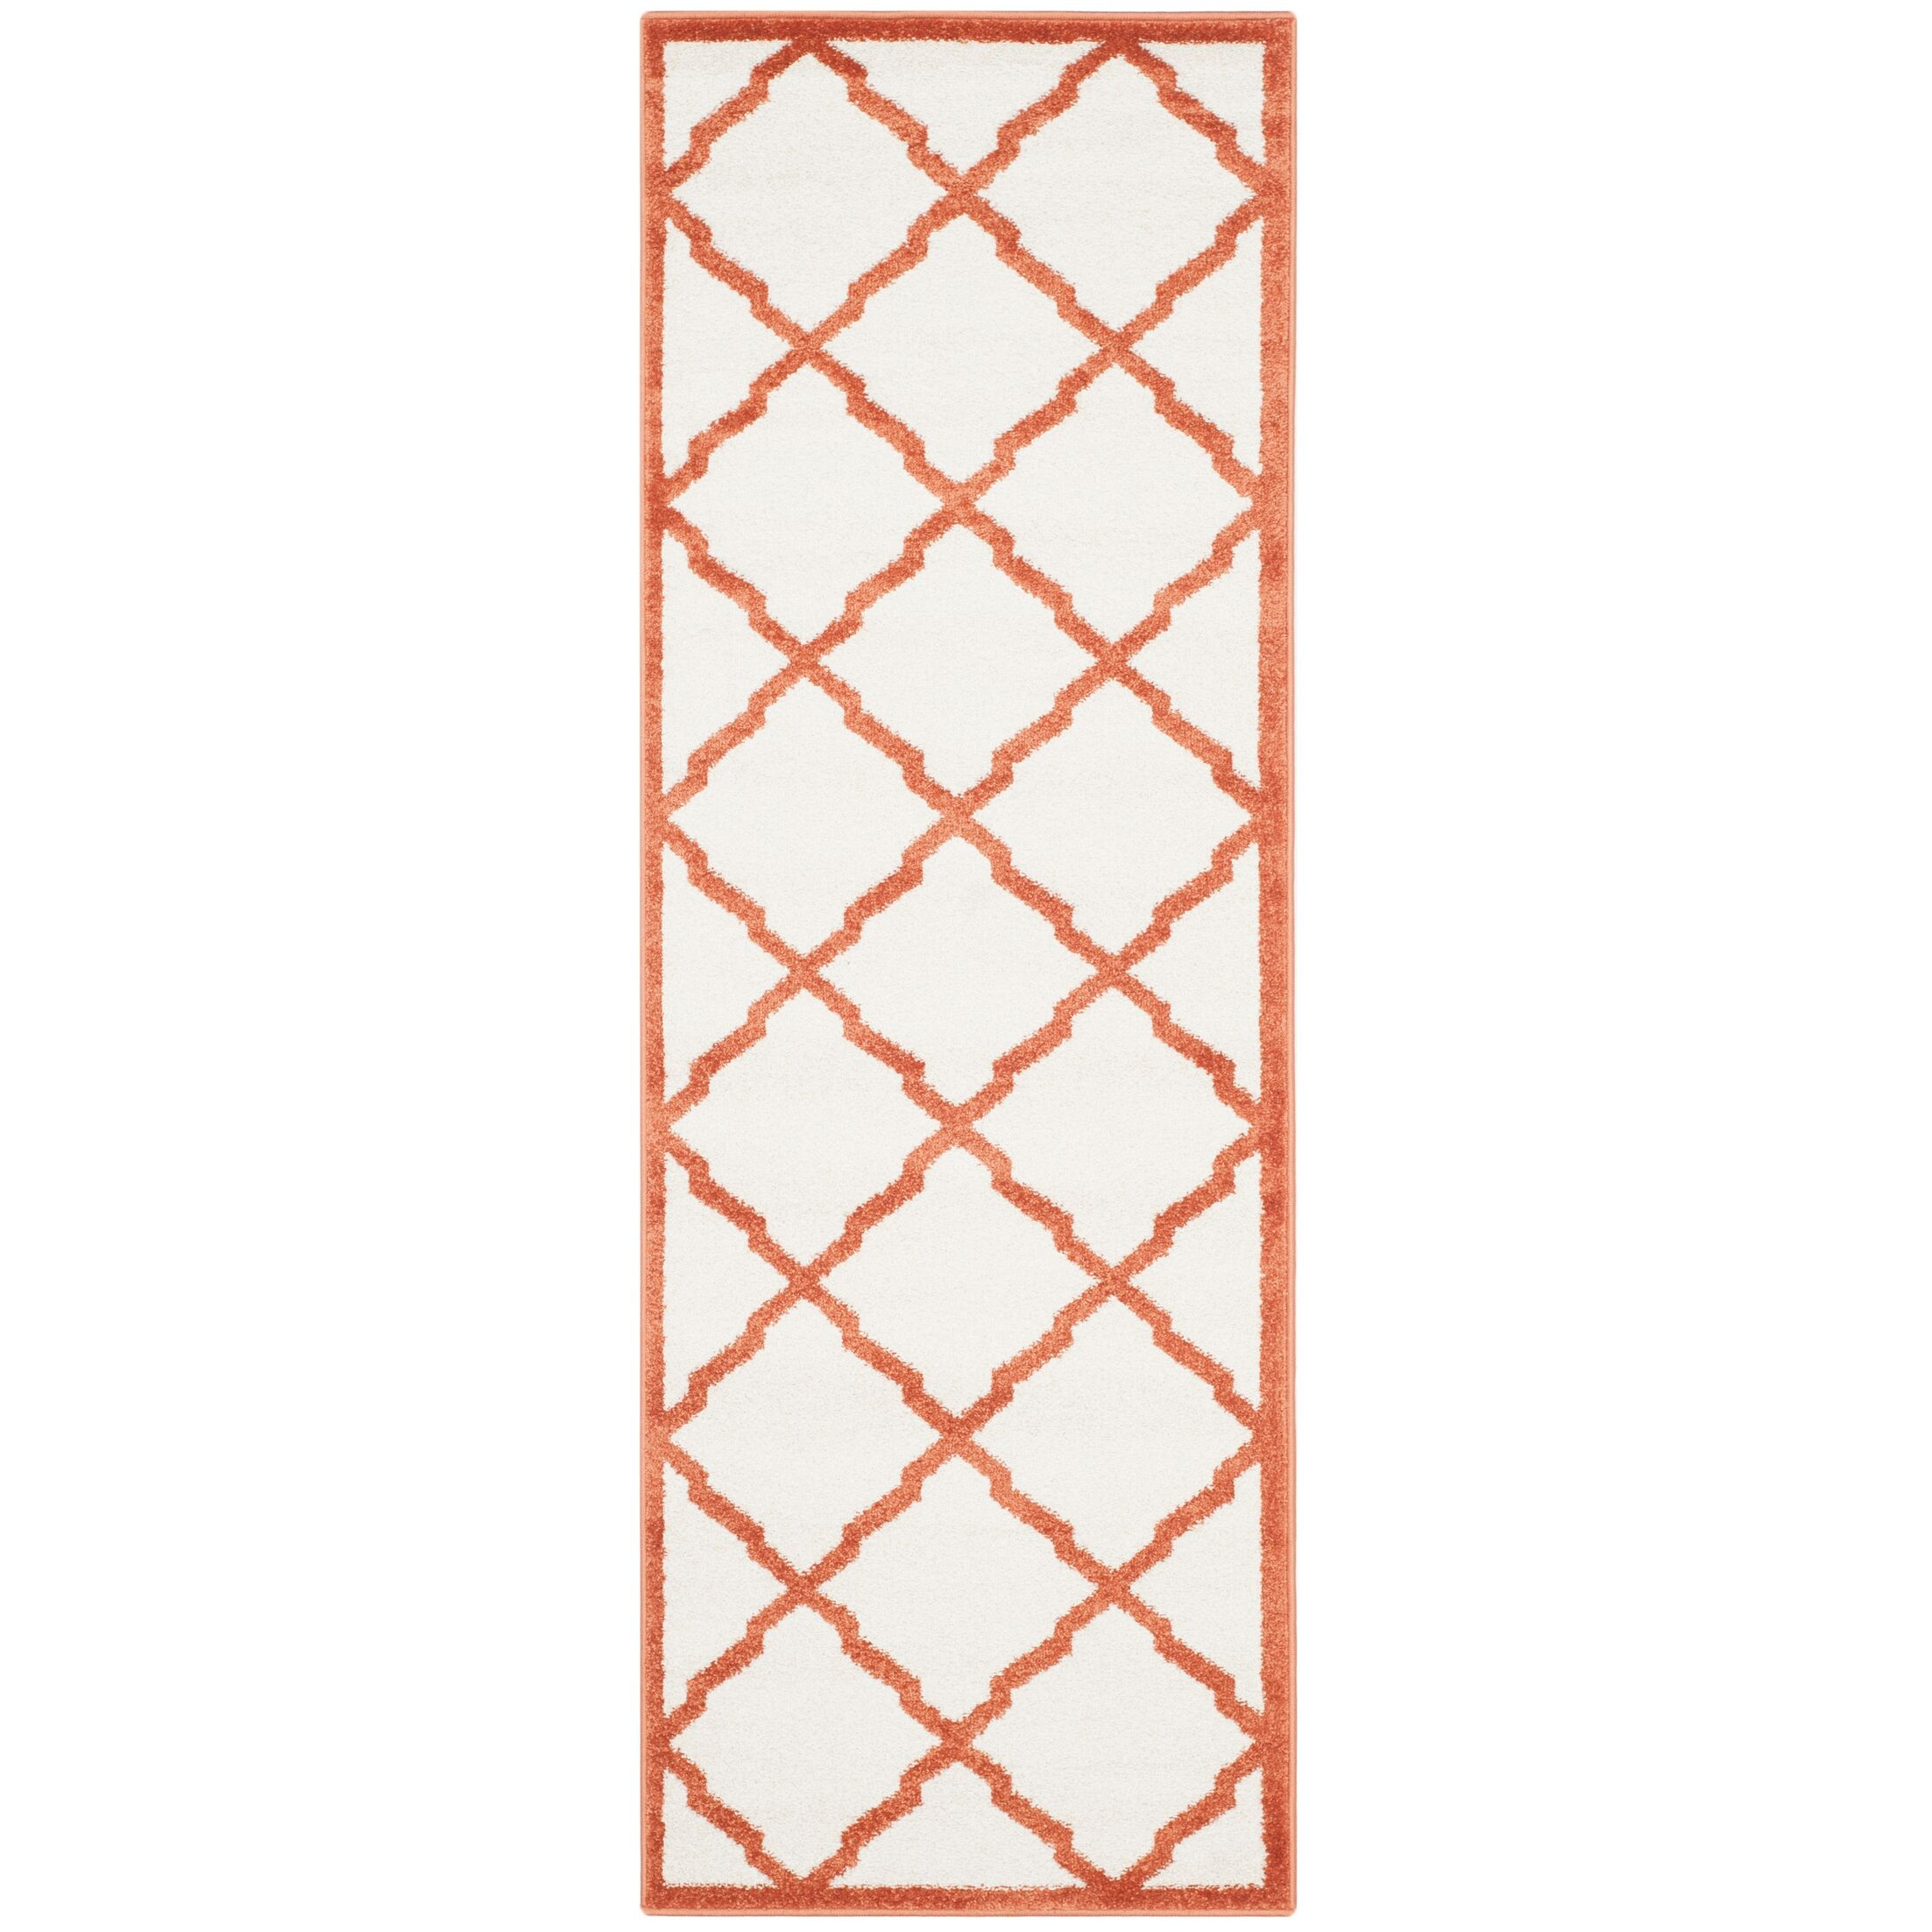 Maritza Beige/Orange Indoor/Outdoor Area Rug Rug Size: Runner 2'3